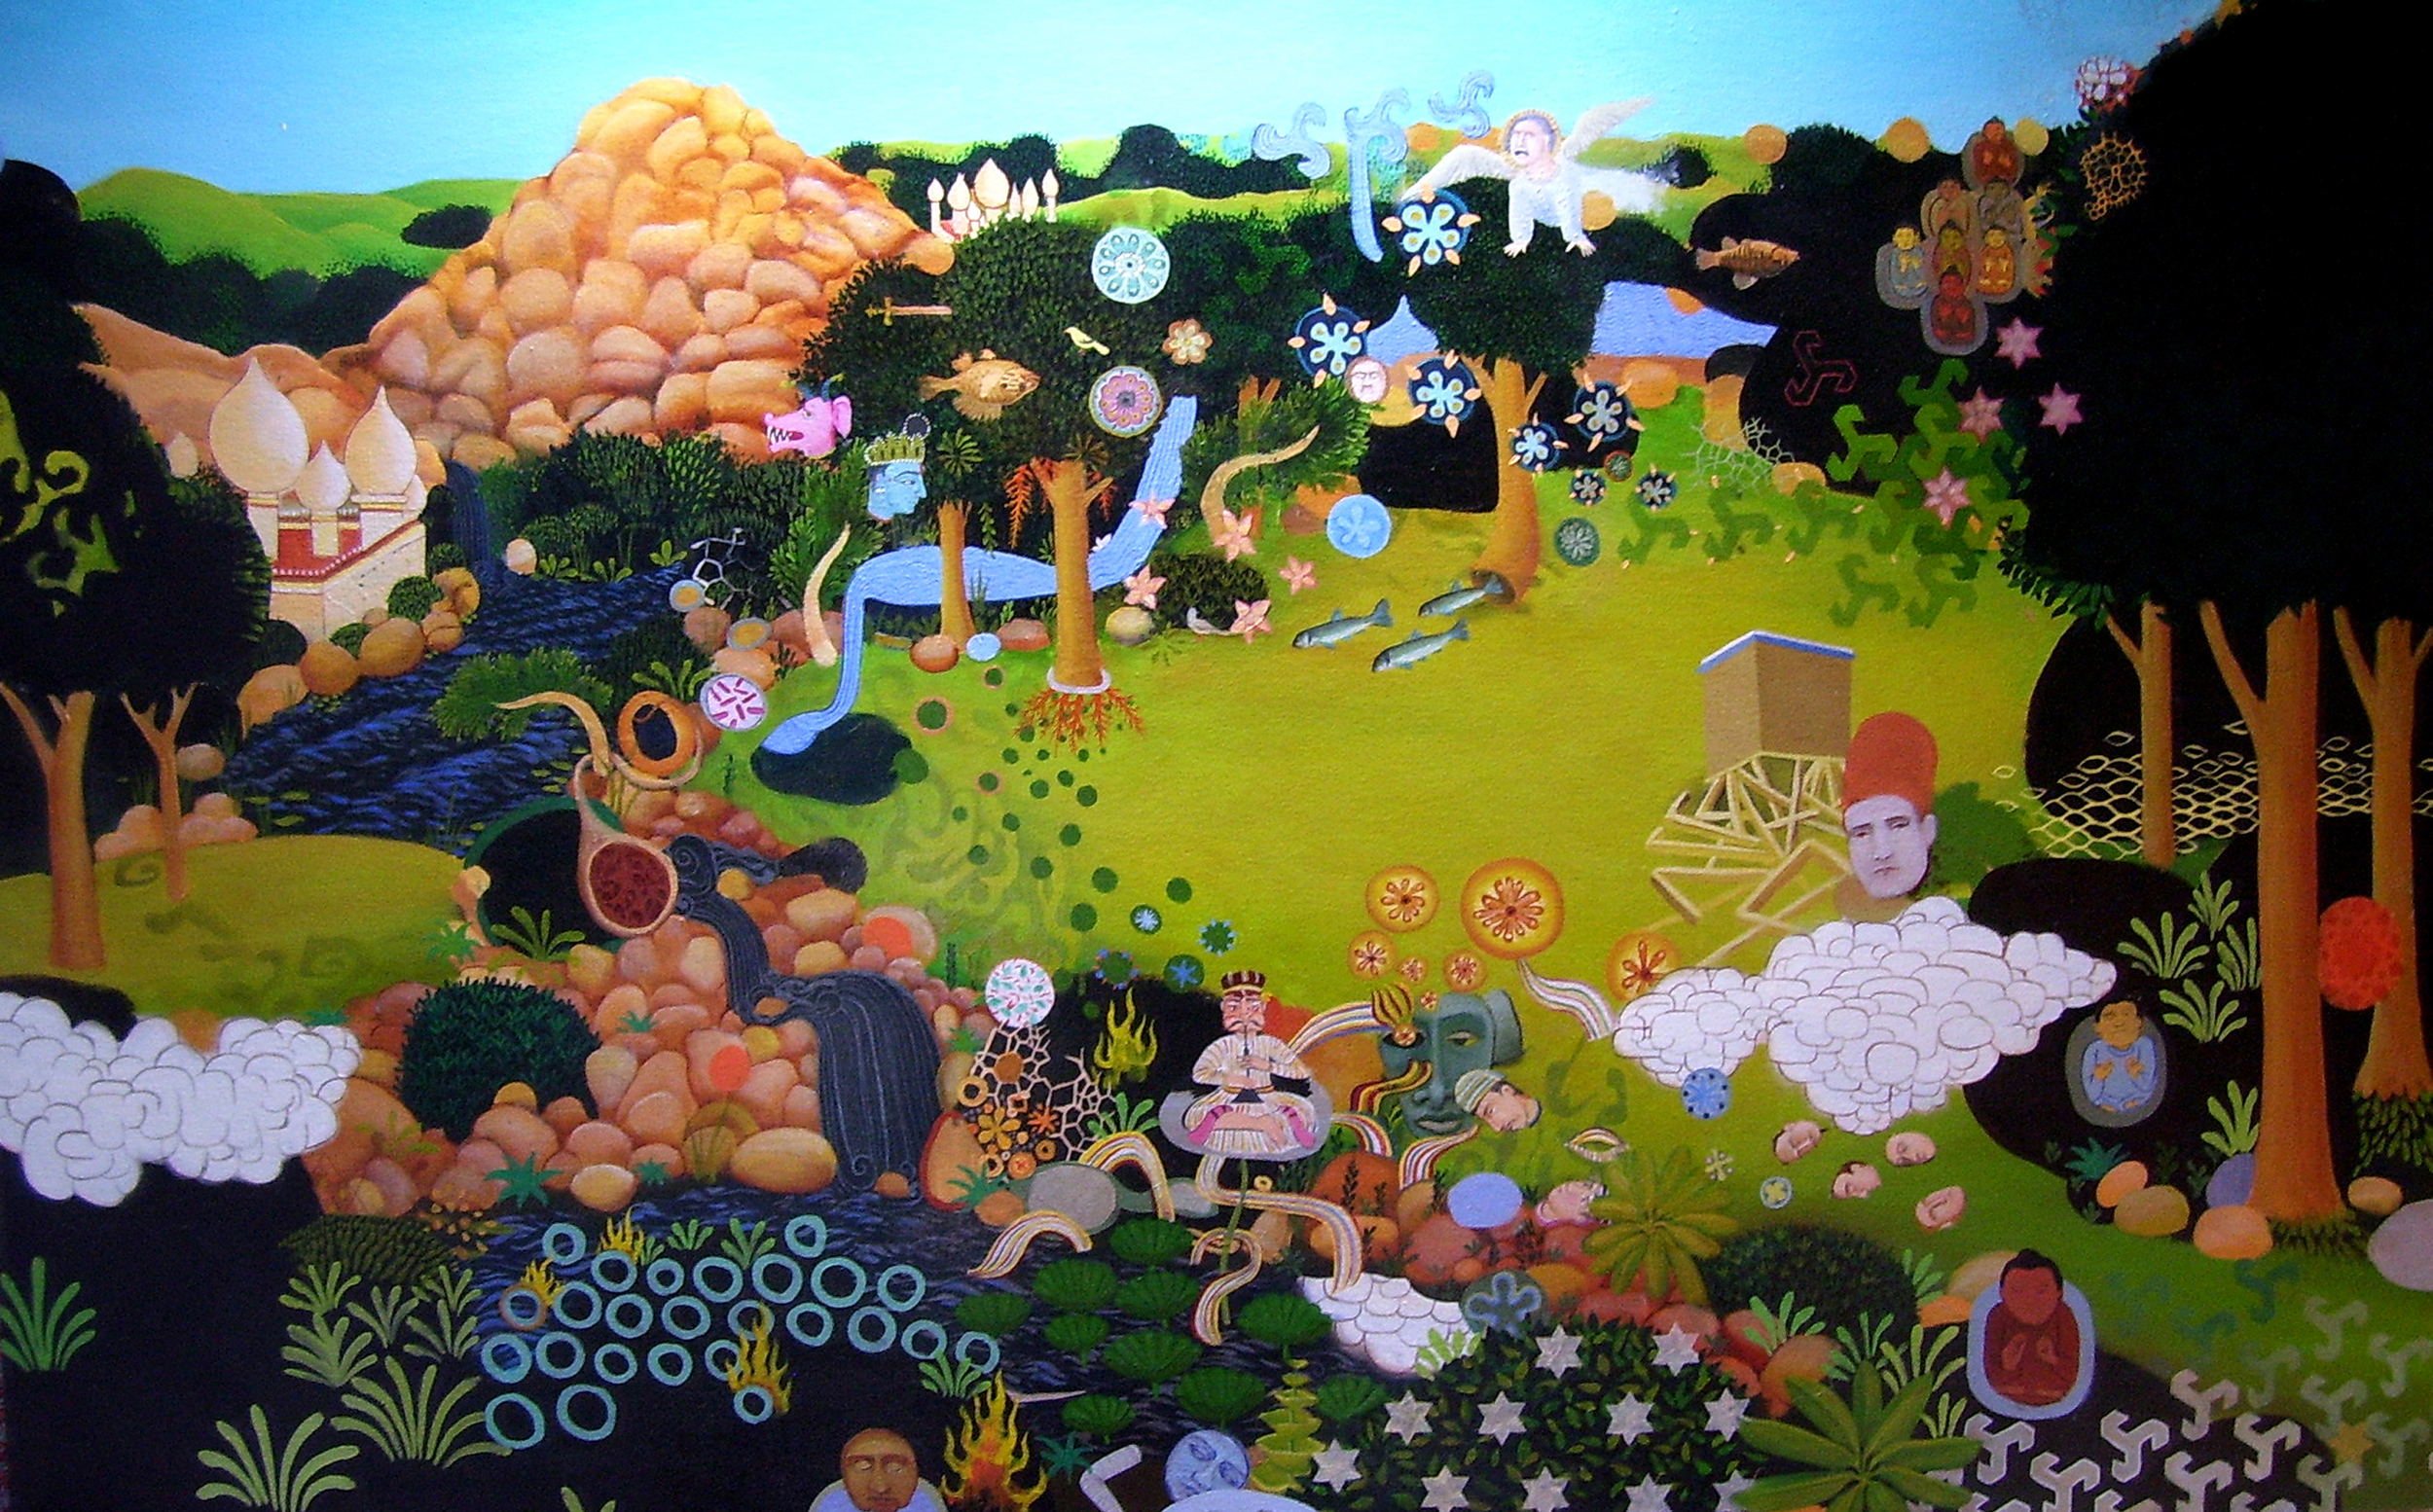 Saturday Afternoon in the Land of the Gods 2004 oil on canvas 46 x 72 inches